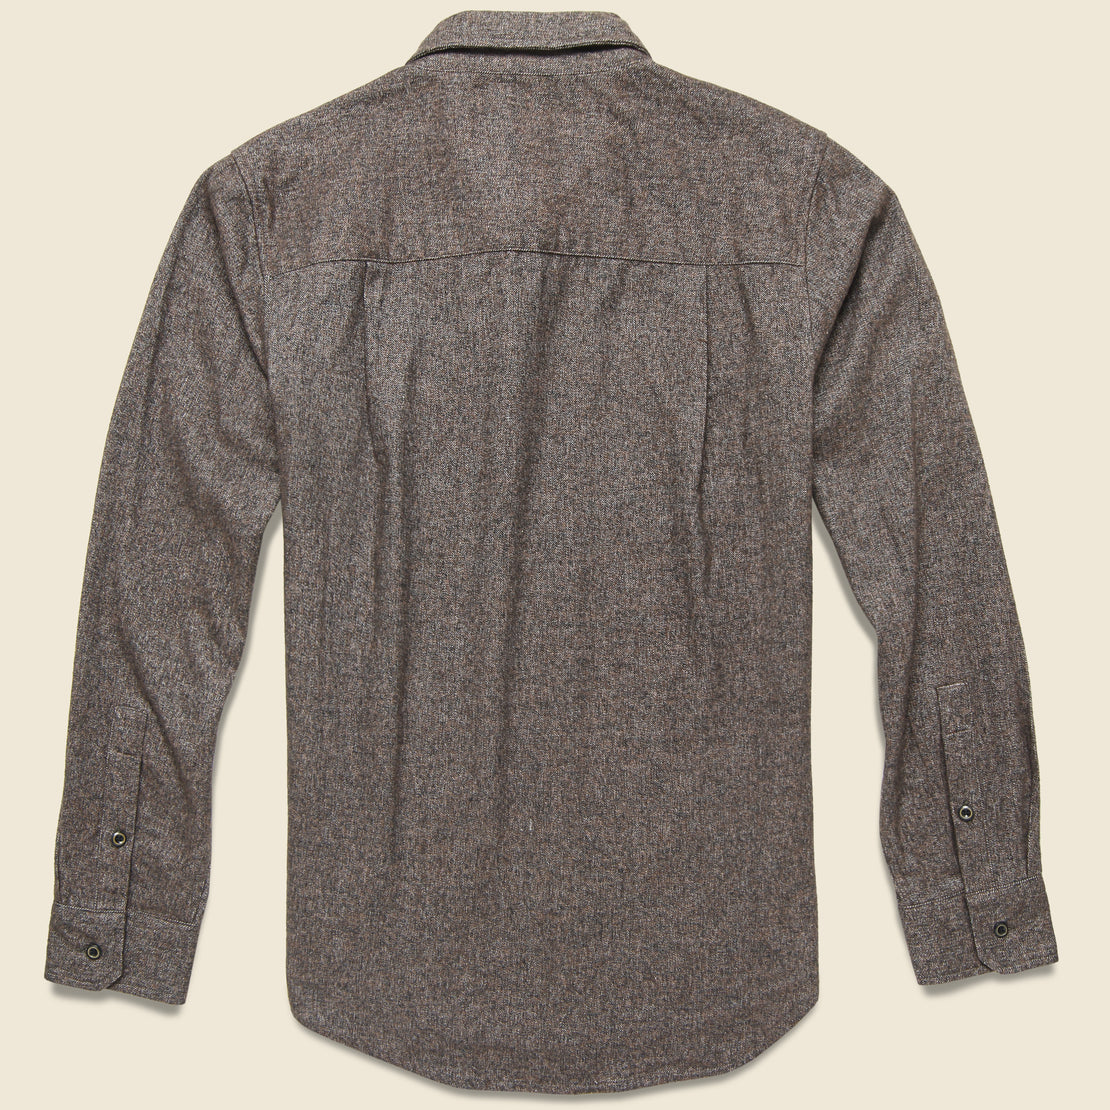 Bedford Shirt - Coffee Heather